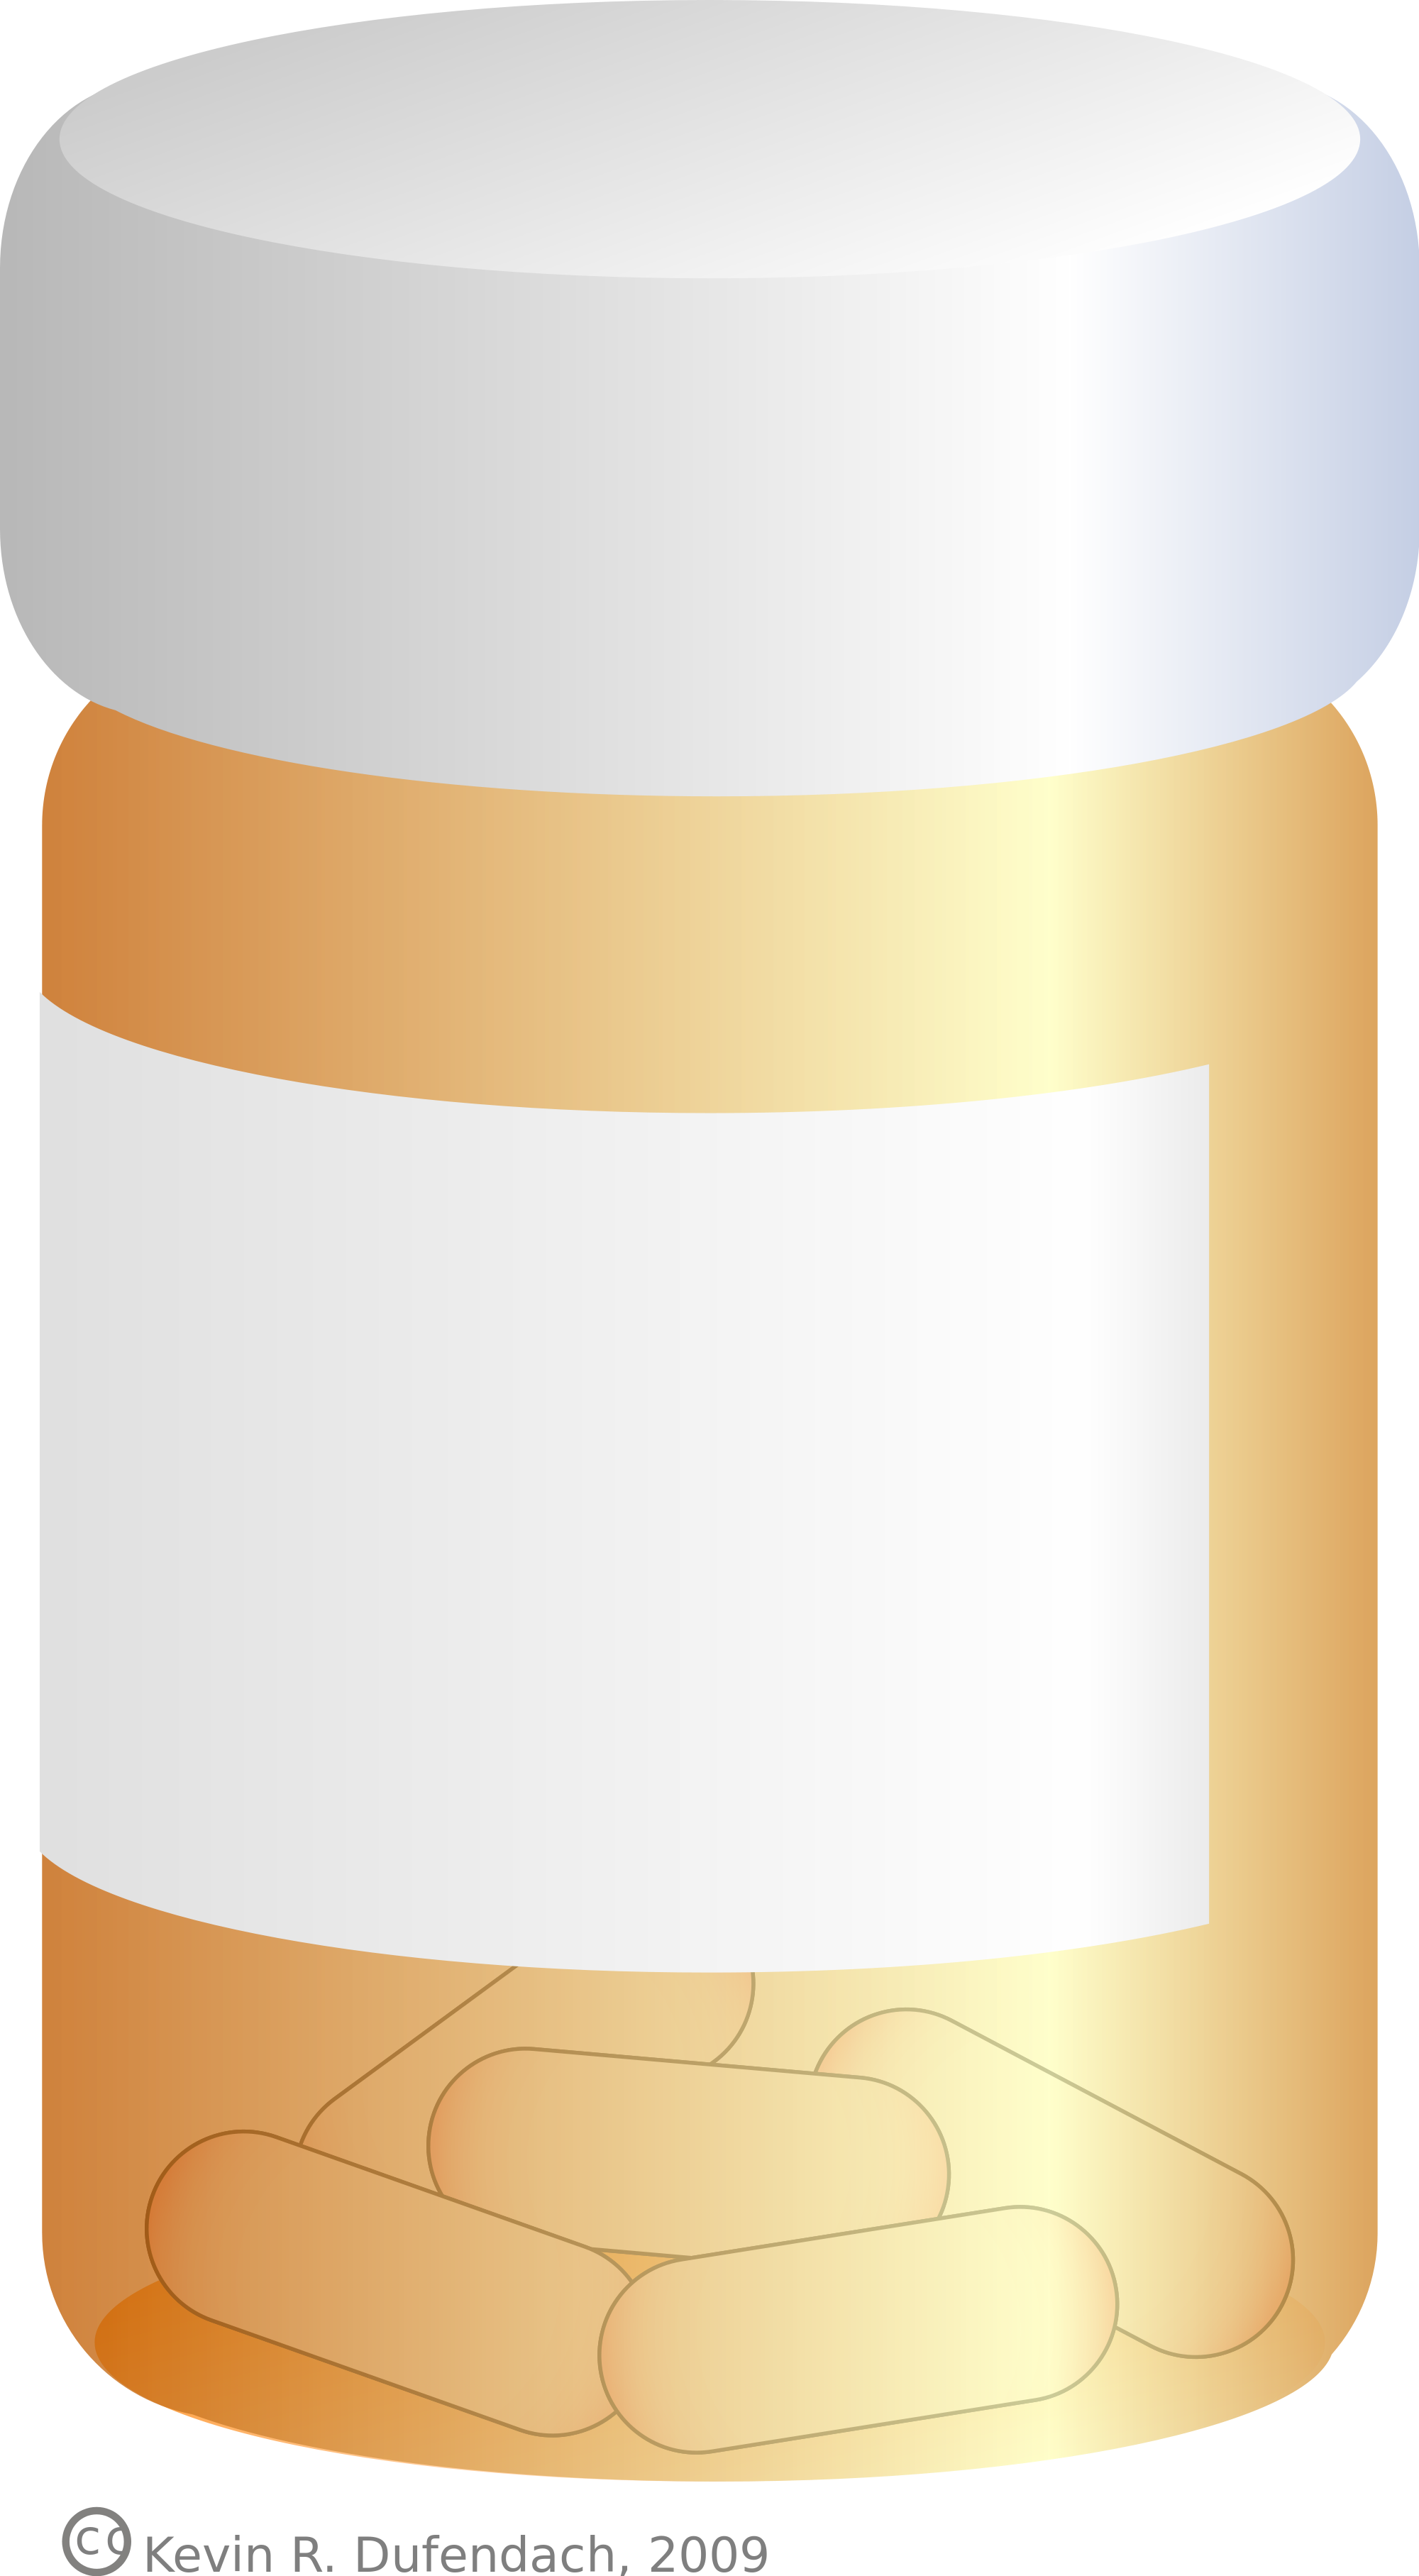 Hd transparent images pluspng. Pill bottle png